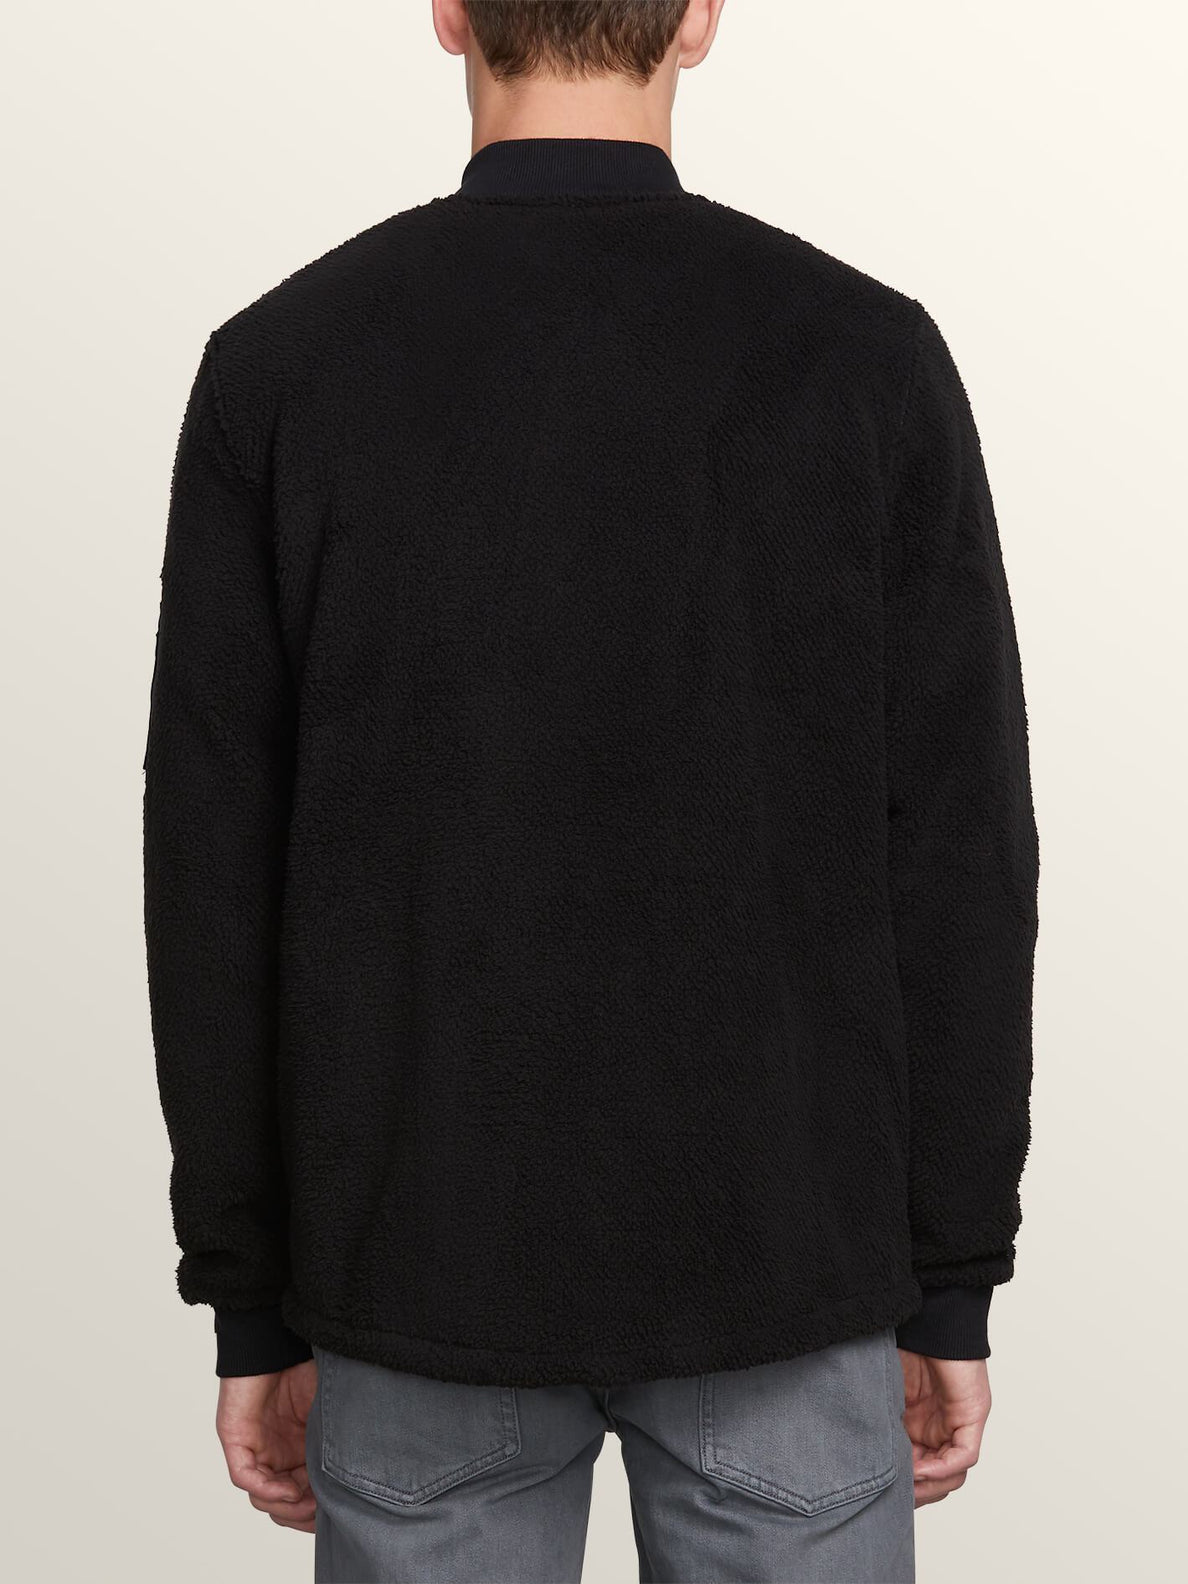 Field Polar Fleece Sweatshirts - Black